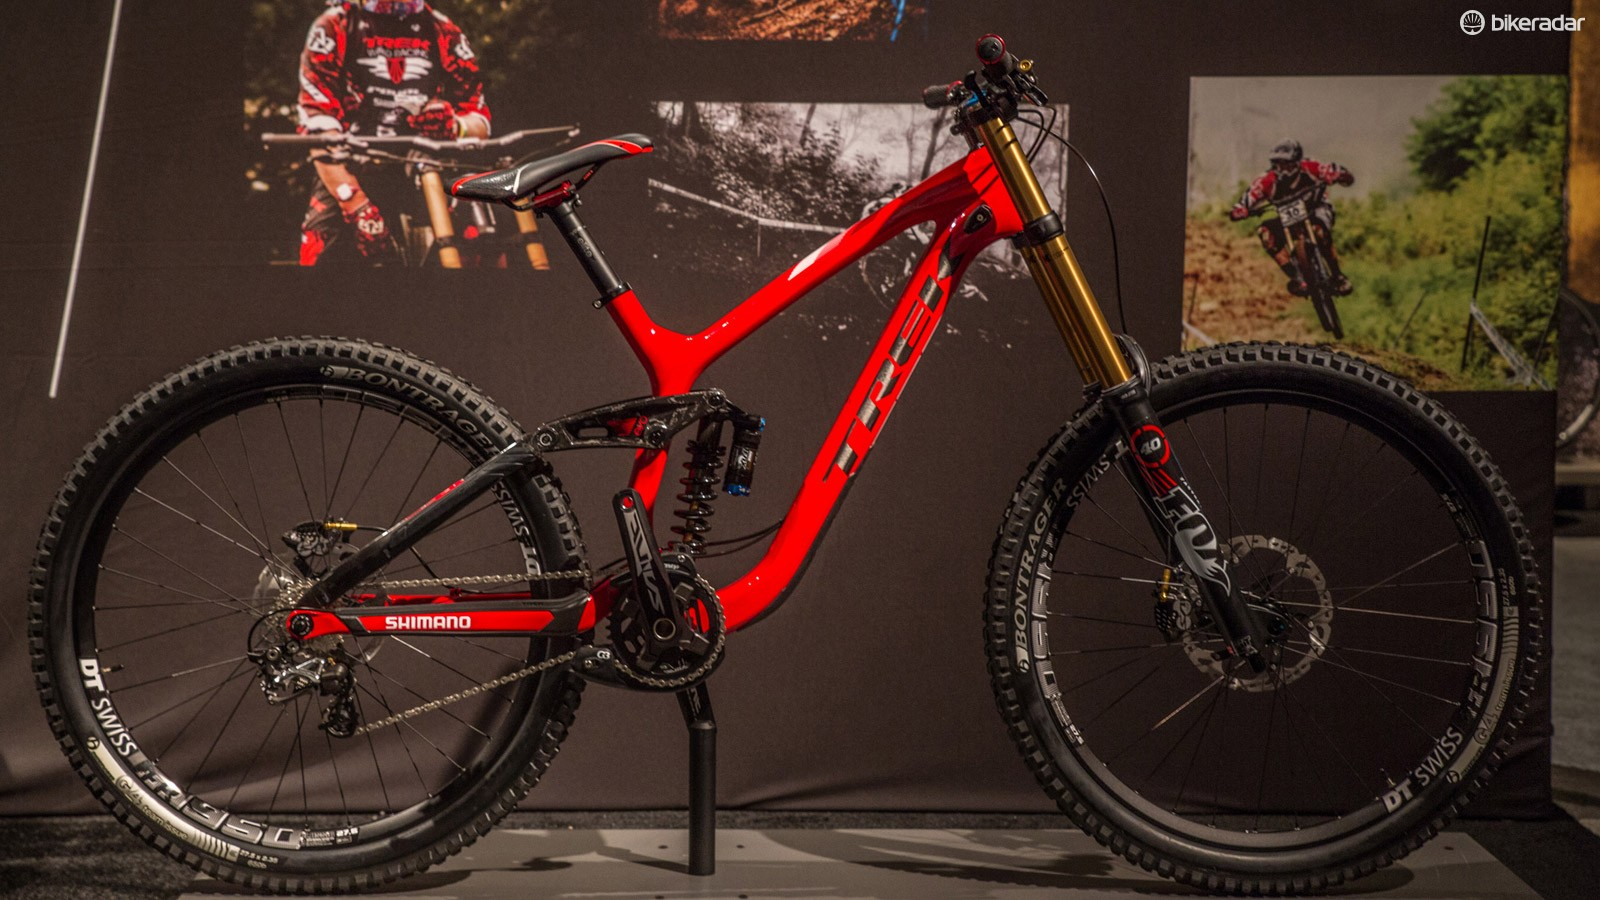 The Trek Session 9.9 gets a full carbon frame and a redesign around 27.5in wheels for 2015